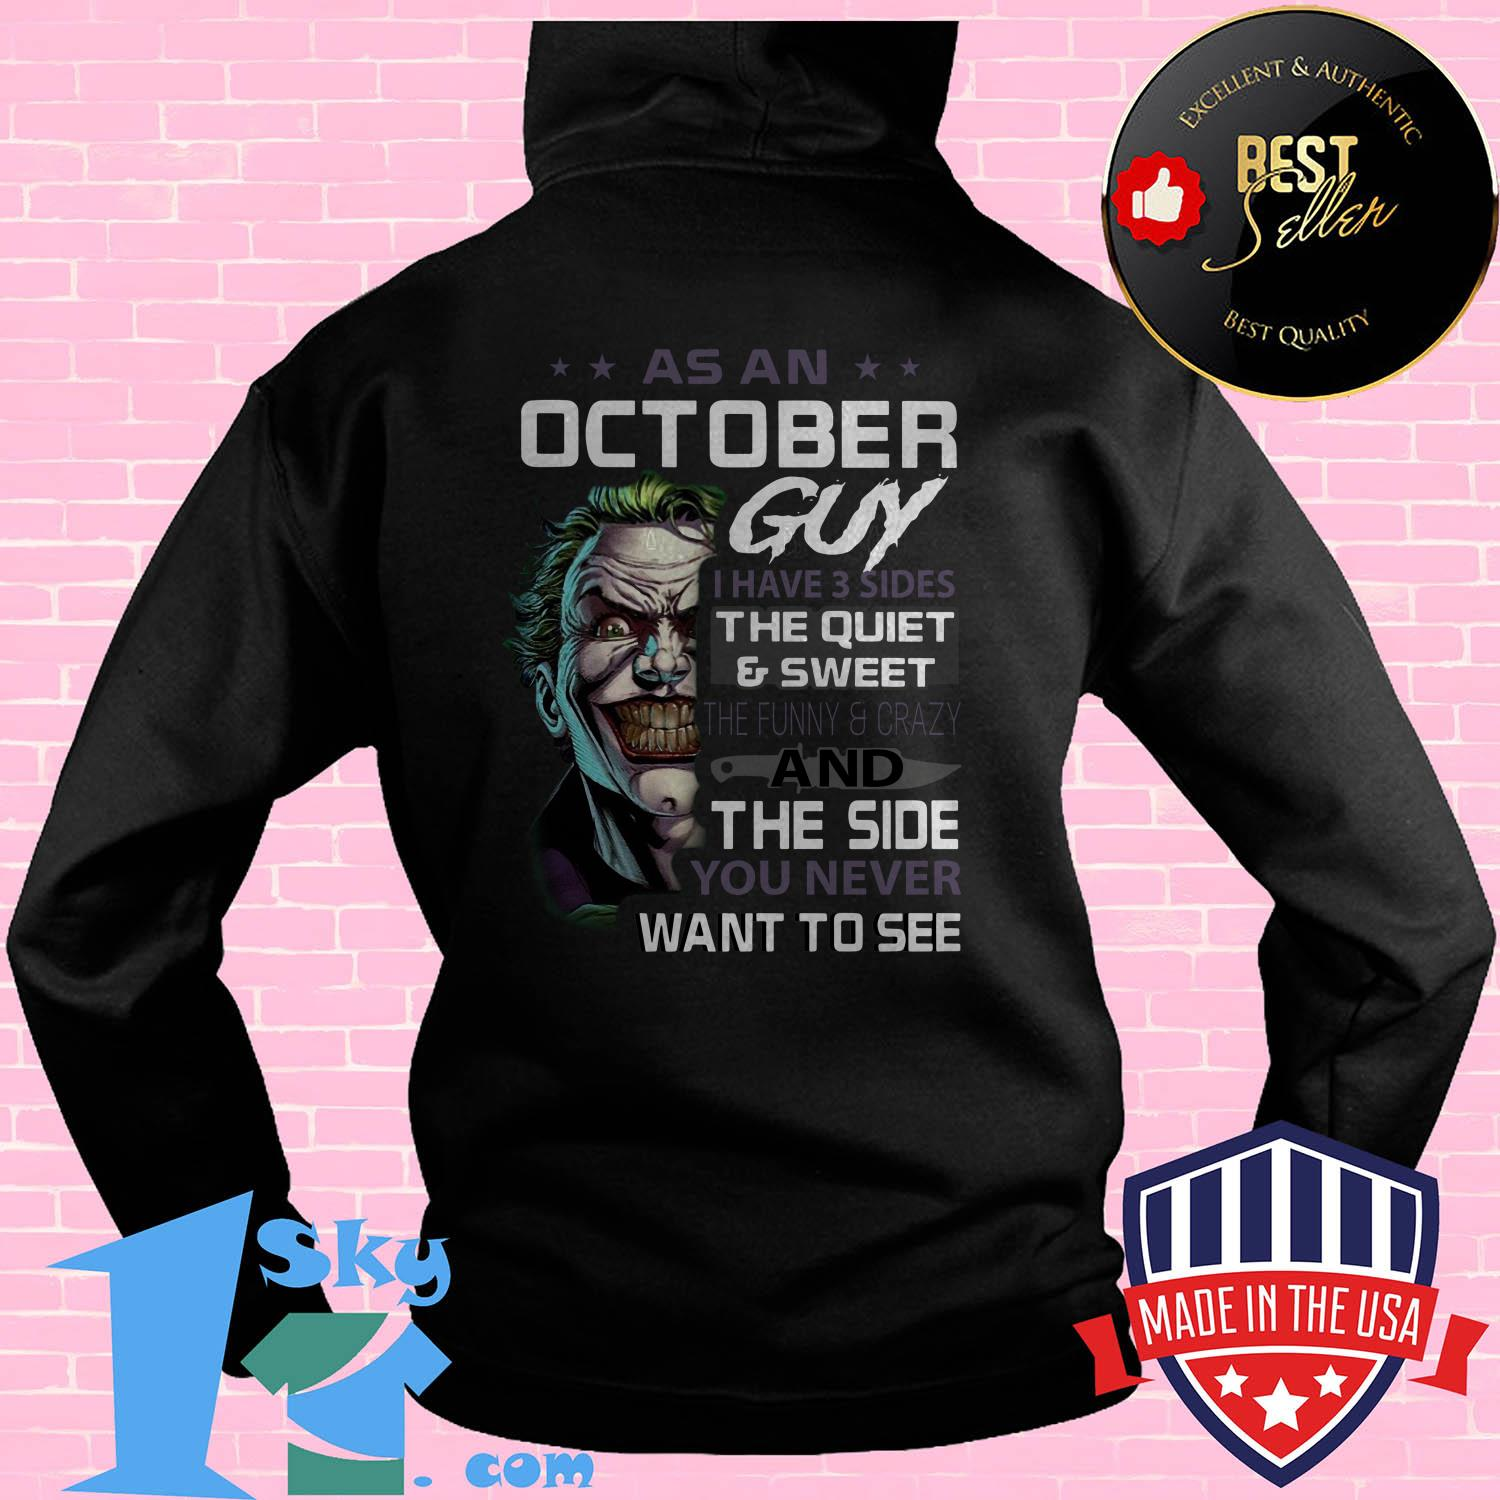 premium joker as an october guy i have 3 sides the quiet sweet the funny crazy and the side you never want to see hoodie 1 - Premium Joker As An October Guy I Have 3 Sides The Quiet & Sweet The Funny & Crazy And The Side You Never Want To See shirt